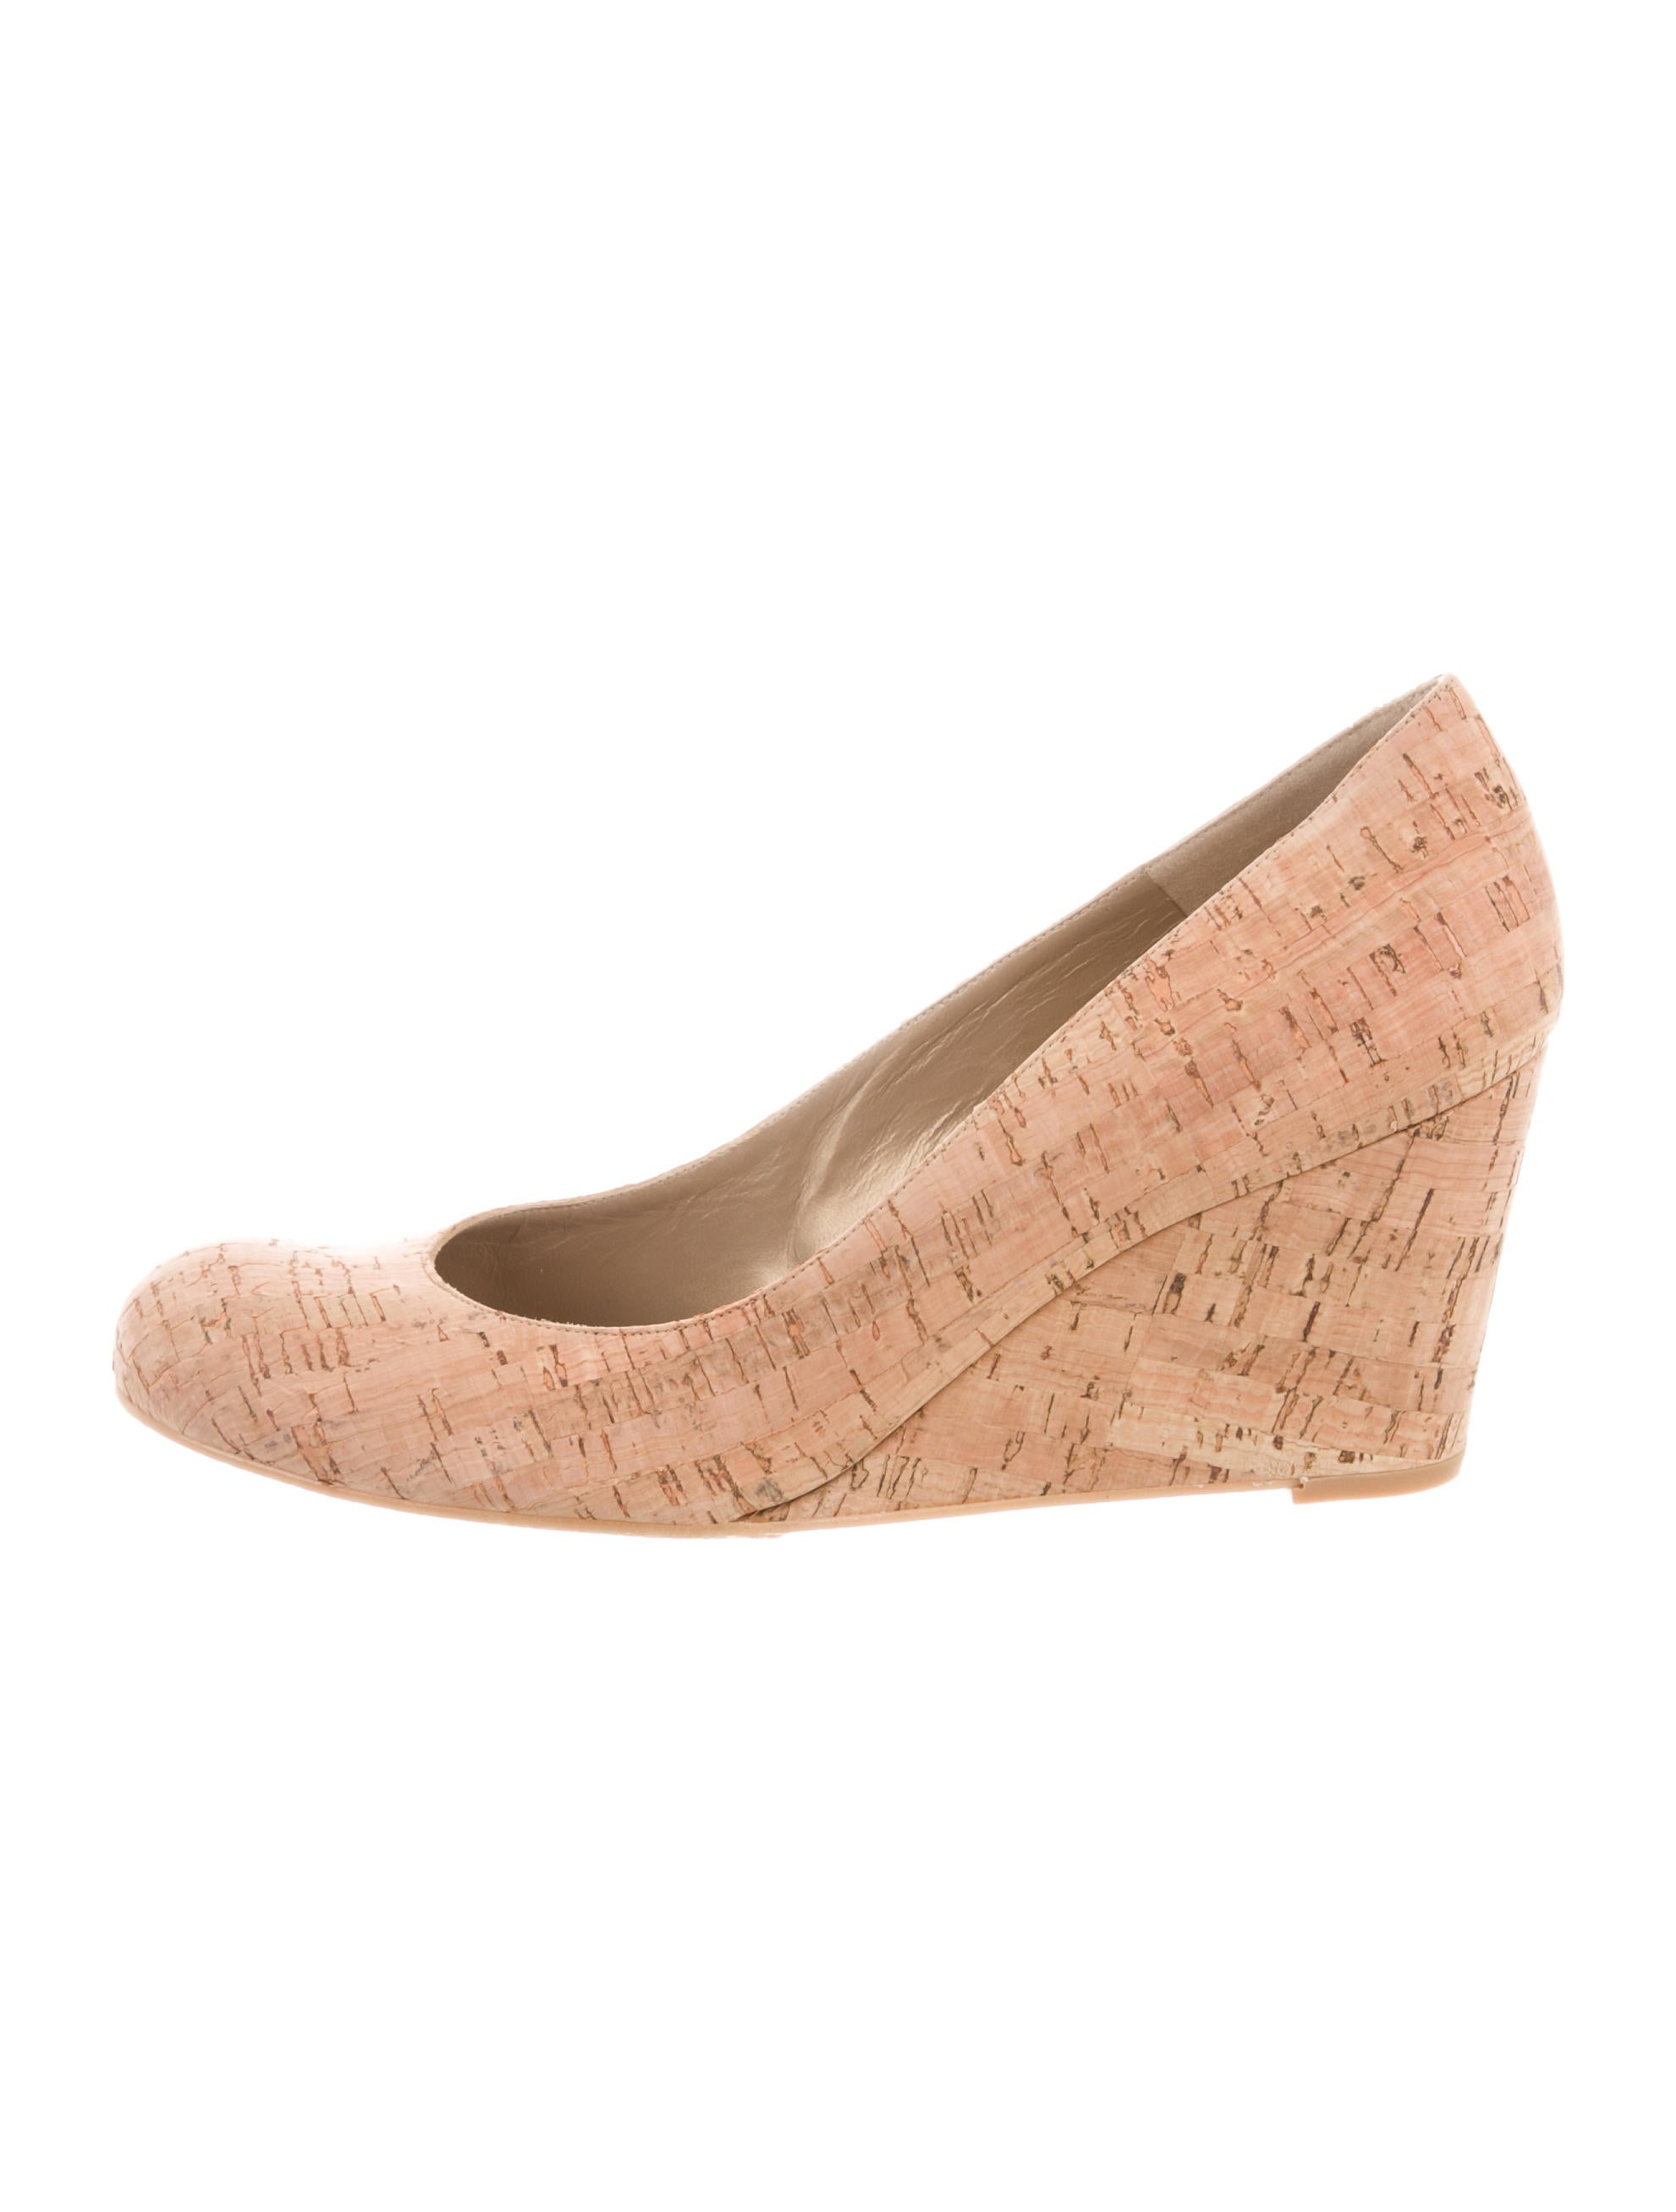 cheap sale extremely clearance store cheap price Stuart Weitzman Luna Cork Wedges w/ Tags discount fashion Style bFTjz